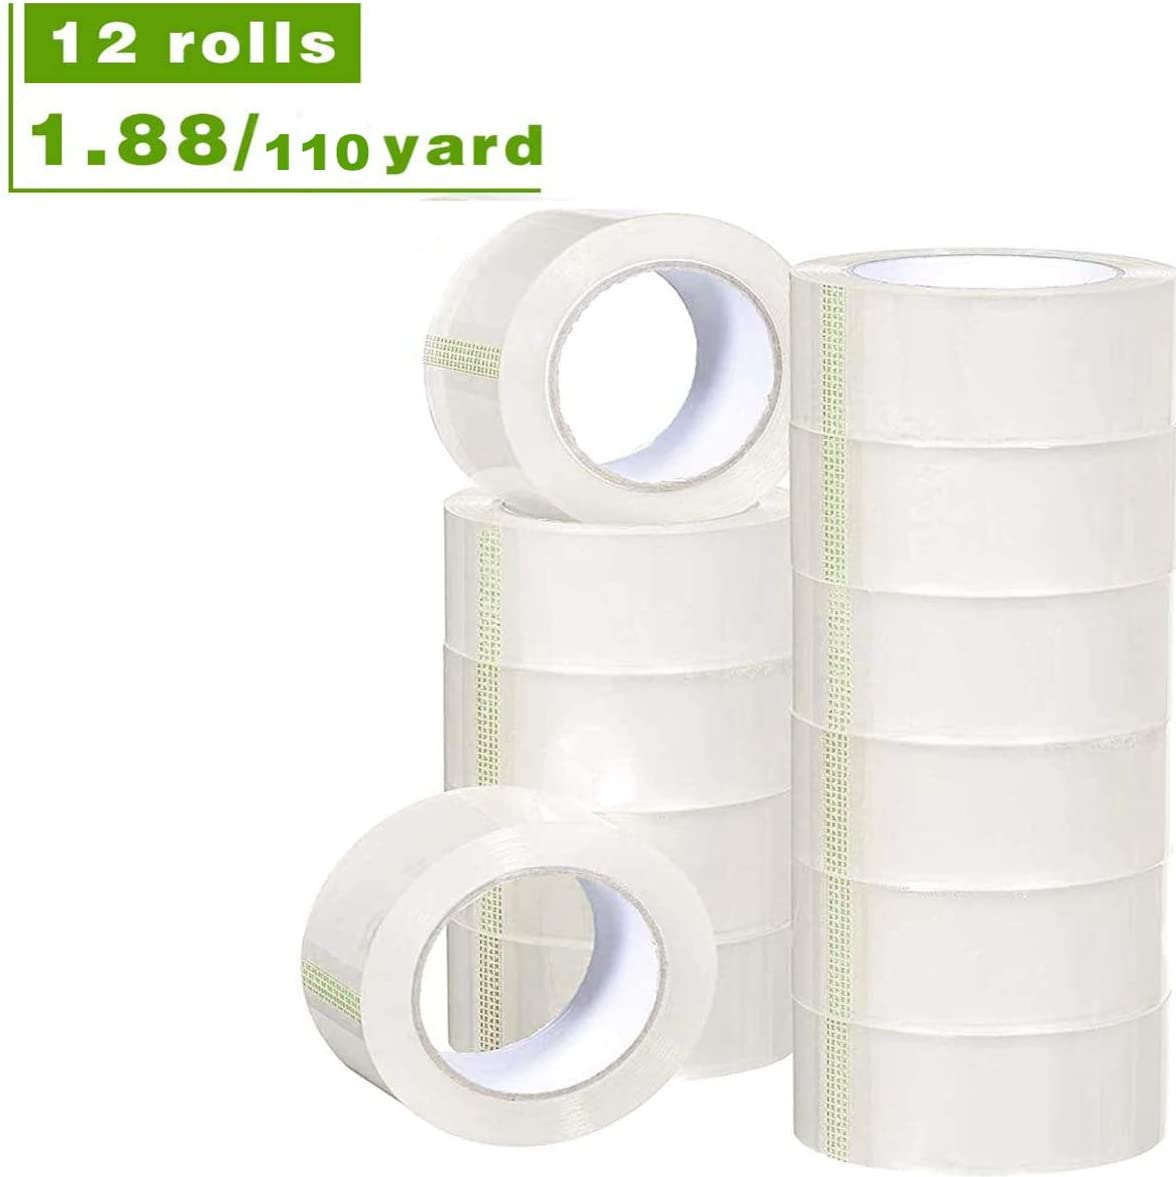 Printholic Packing Tape-110 Yards Per Roll (12 Rolls) 1.88 Inch with Wide Stronger and Thicker, Clear Packing Tape for Moving Packaging Shipping, Office or shiping-Storage-Tape-Packing-Refill-Shipping : Office Products